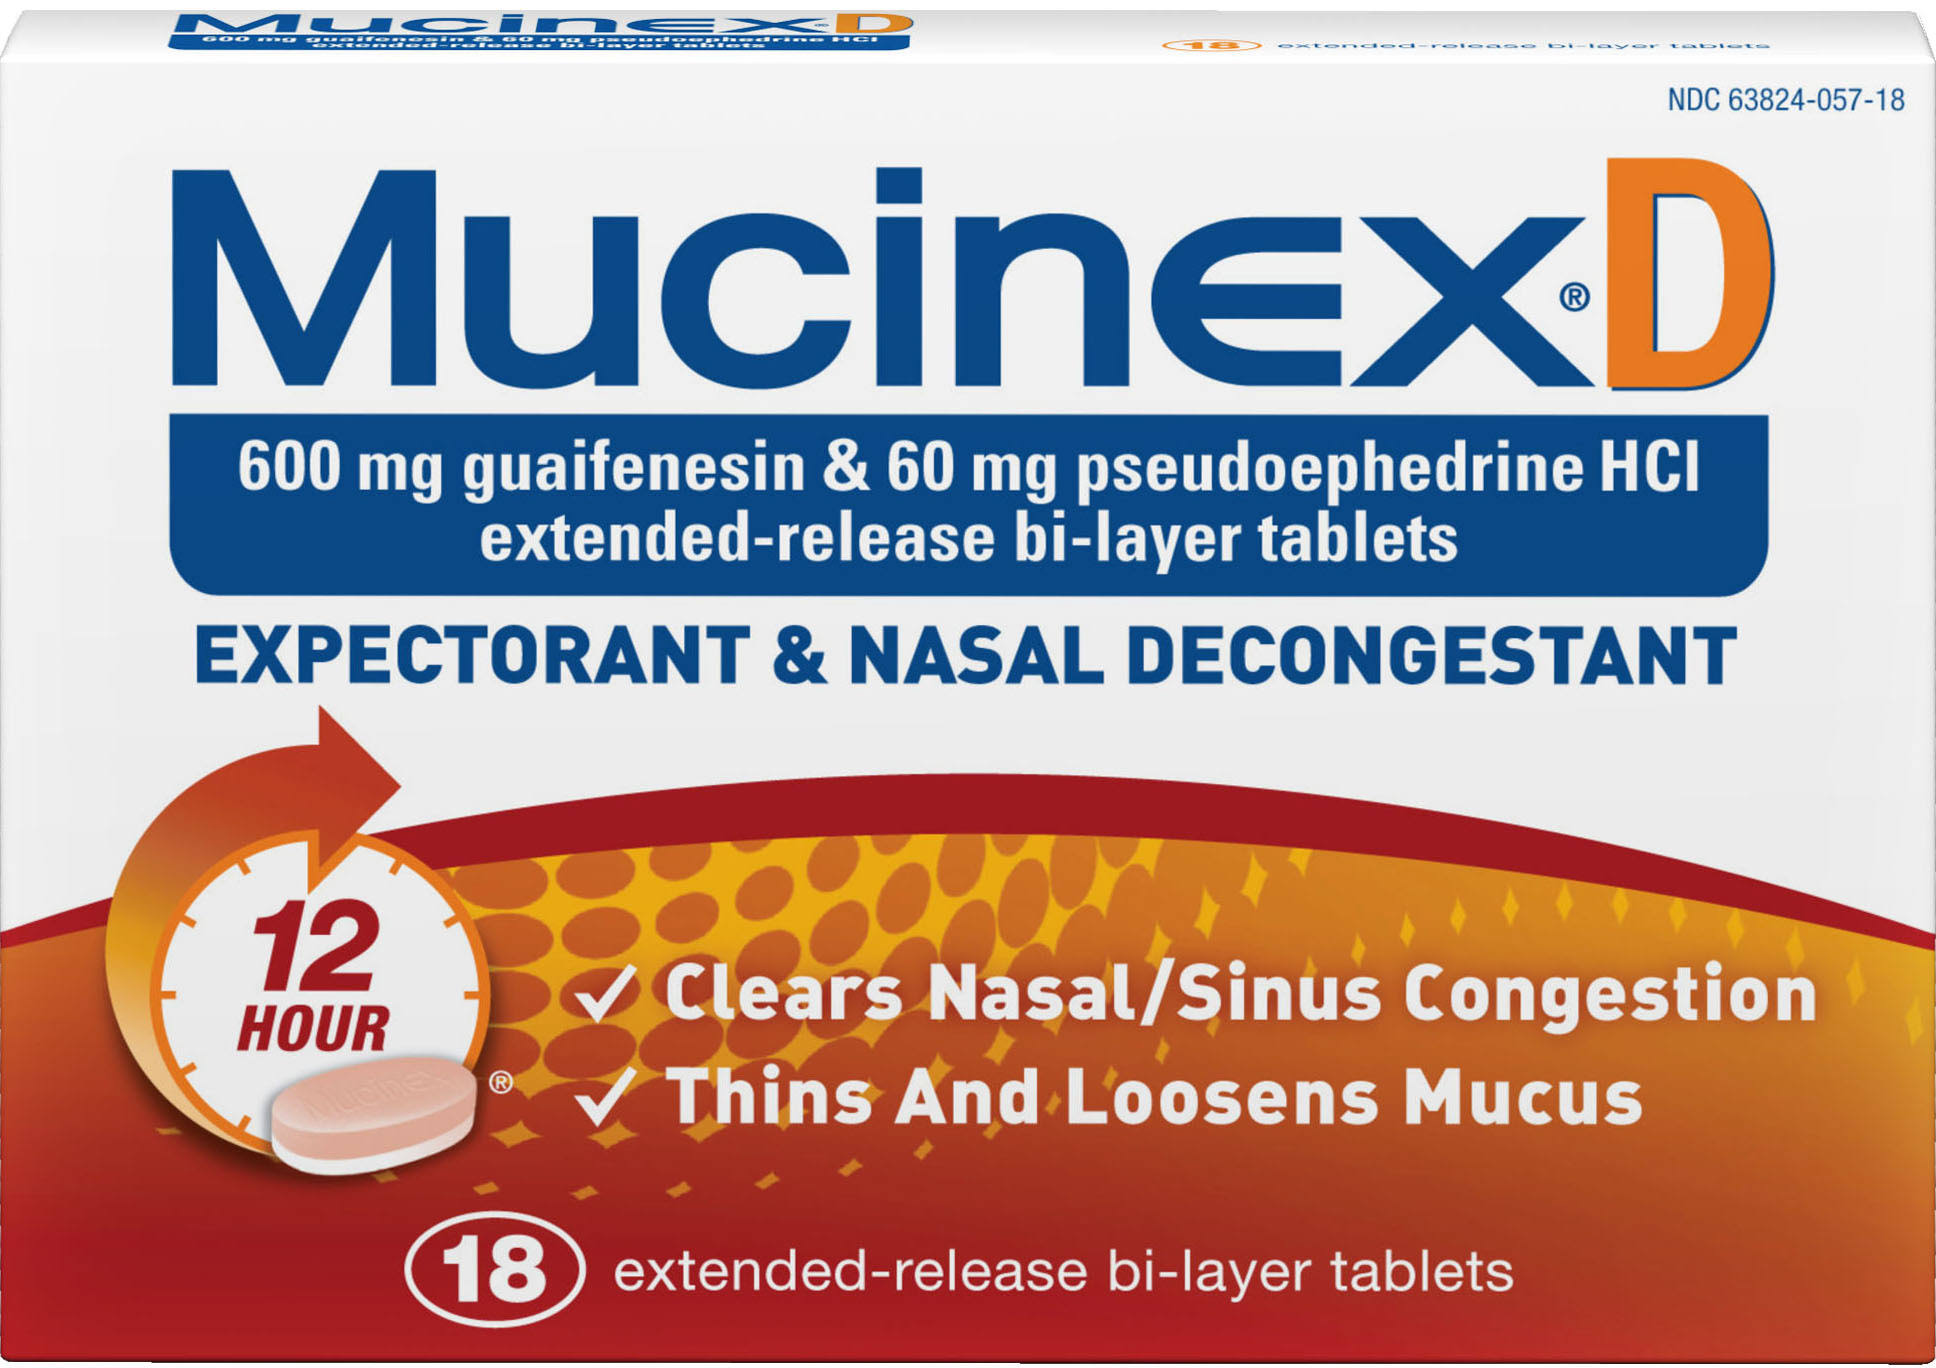 Mucinex D Expectorant & Nasal Decongestant, 12 Hour, Extended-Release Bi-Layer Tablets - 18 tablets